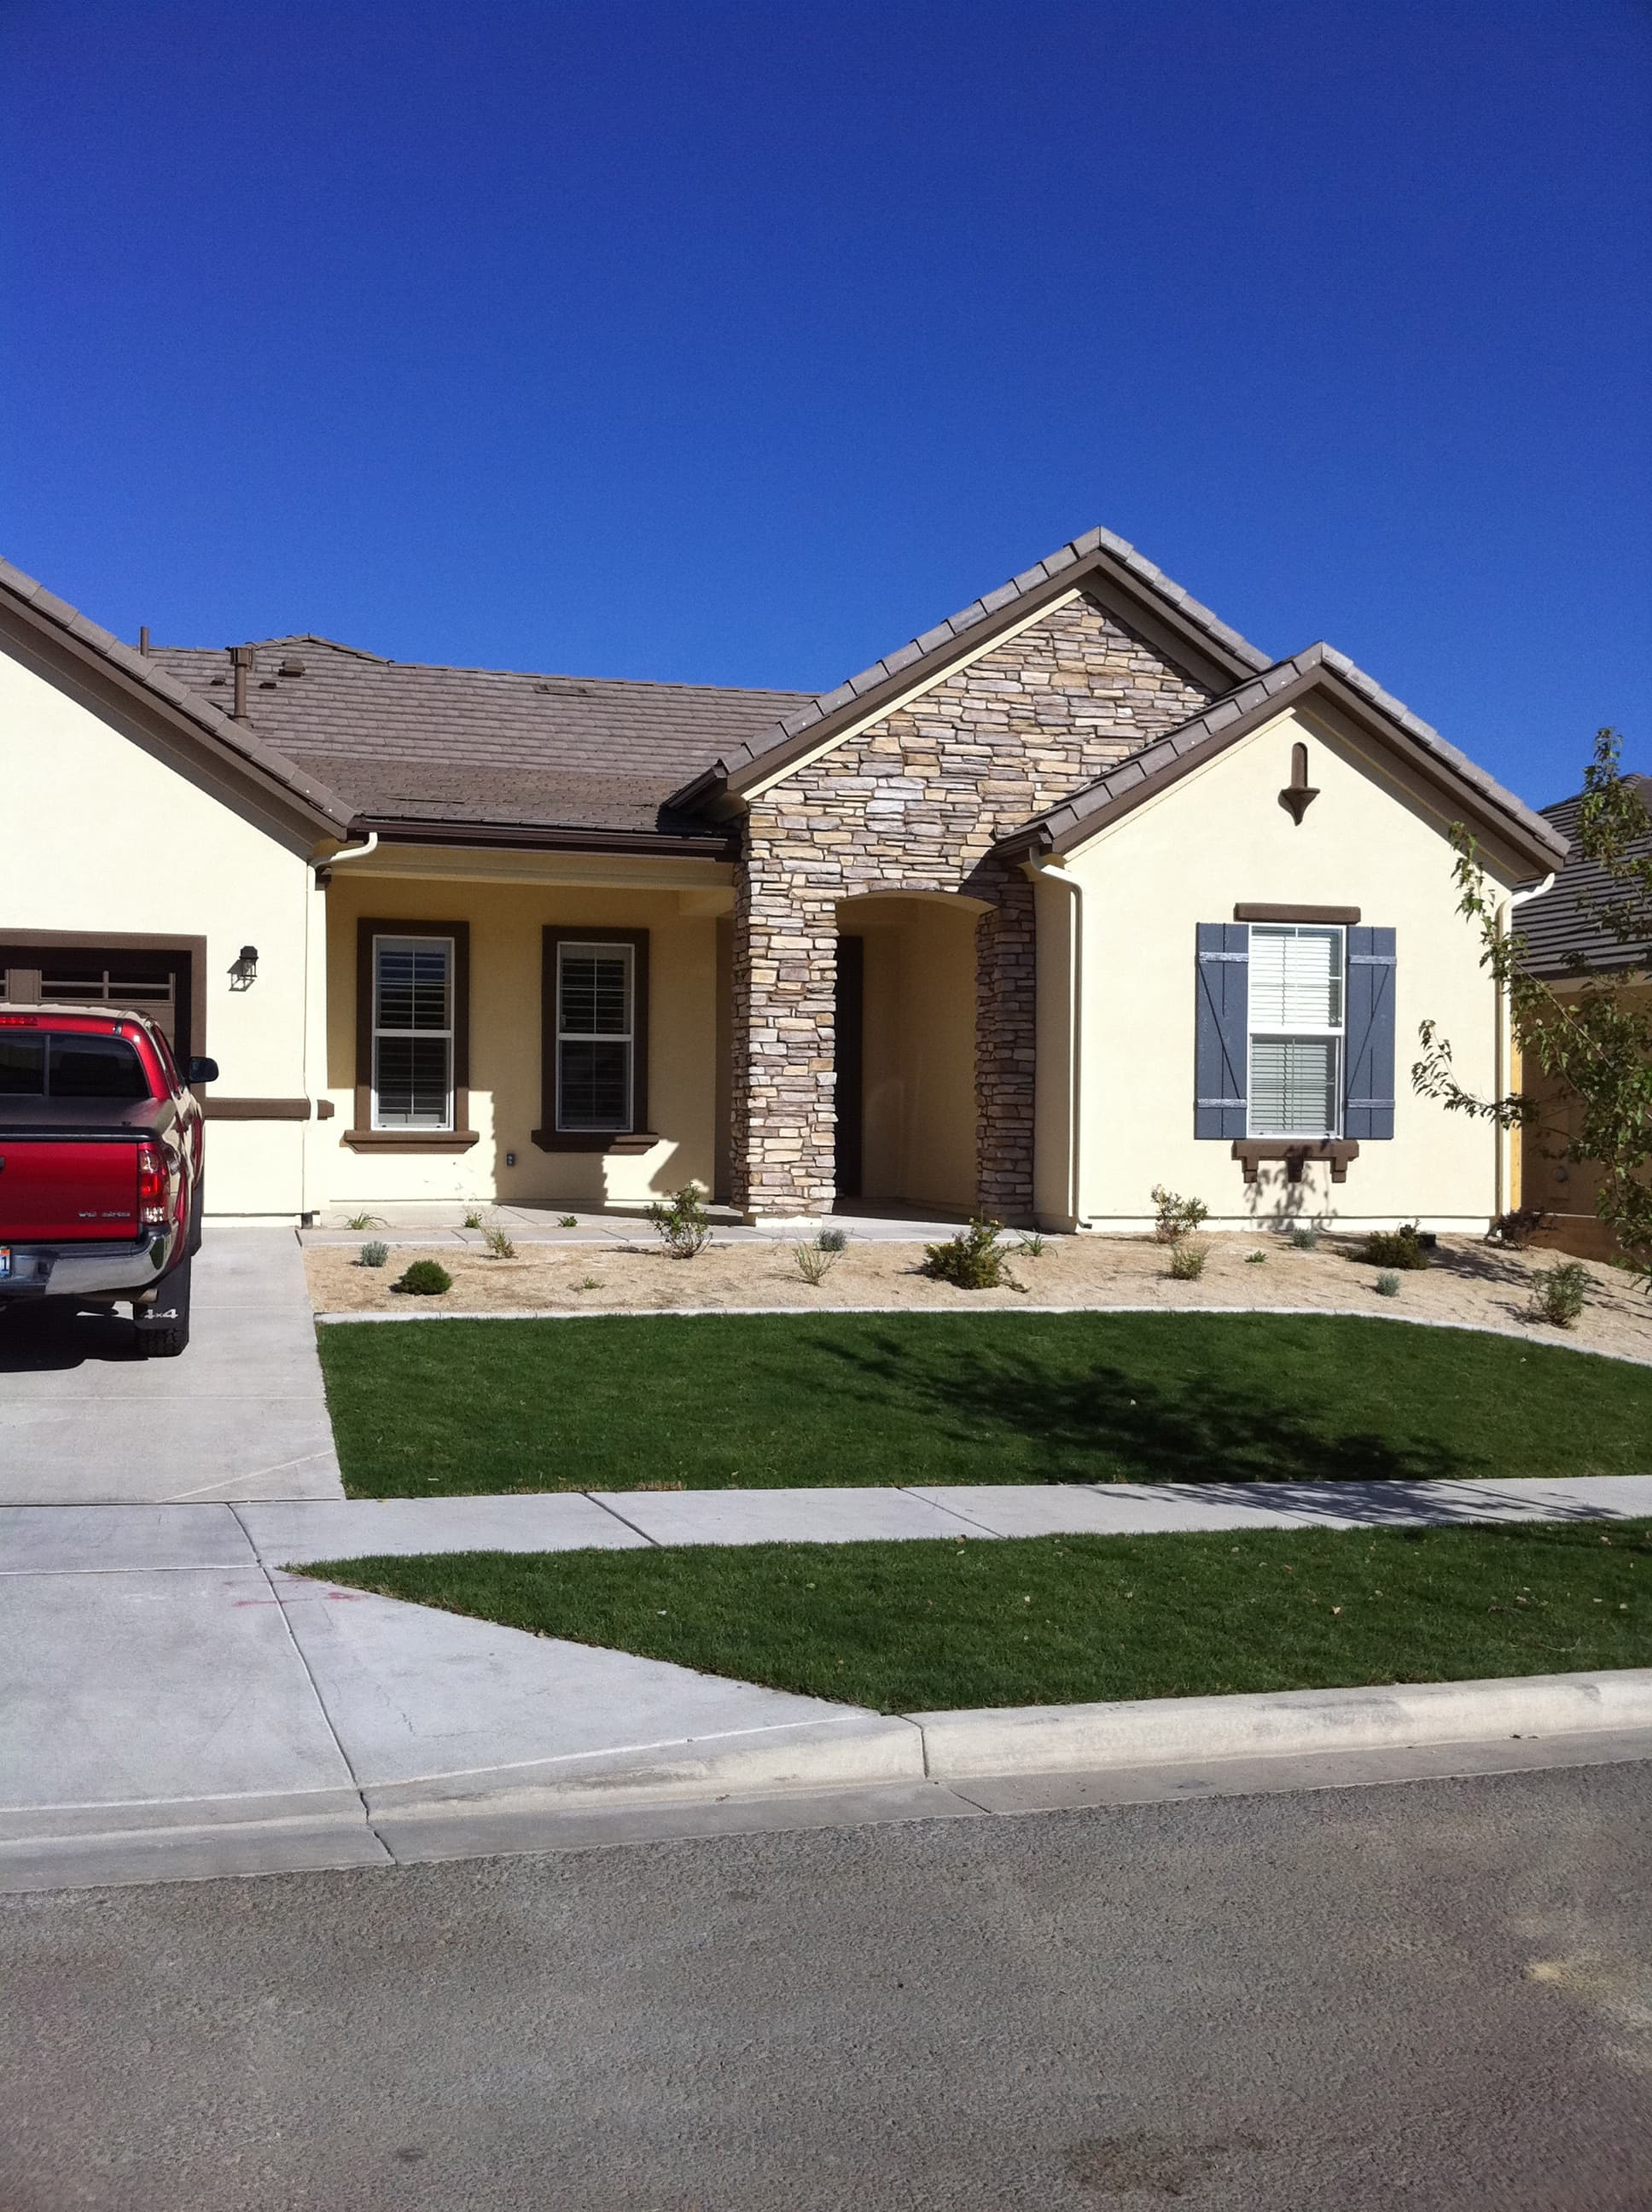 Residential Rain Gutters Intallation in Reno & Sparks NV